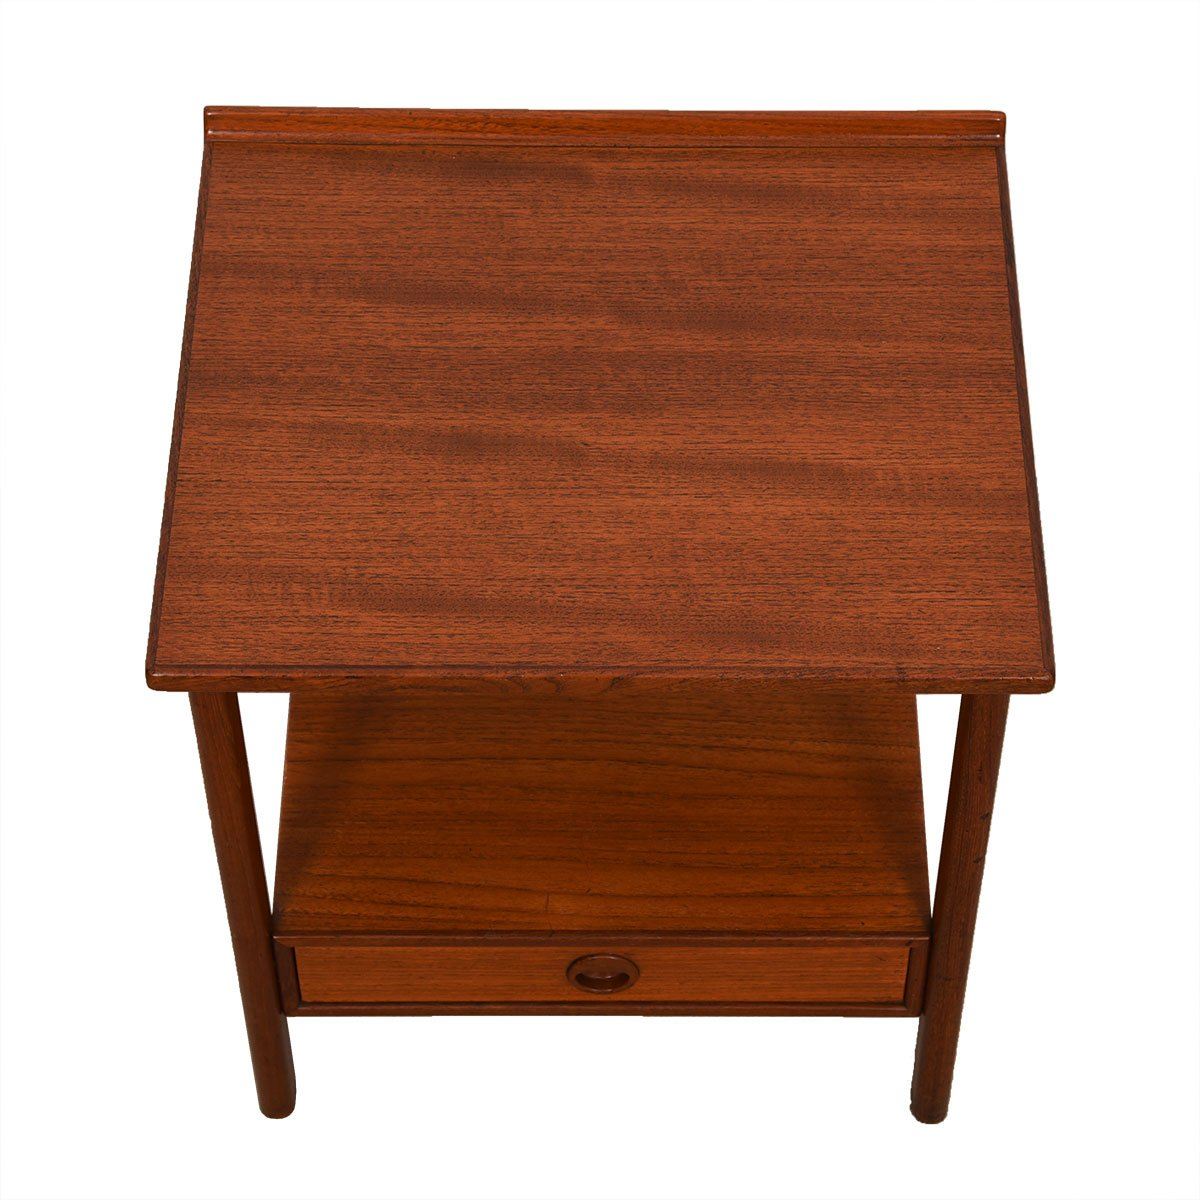 Rare Pair of Teak Swedish Modern Night Stands / End Tables by Dux